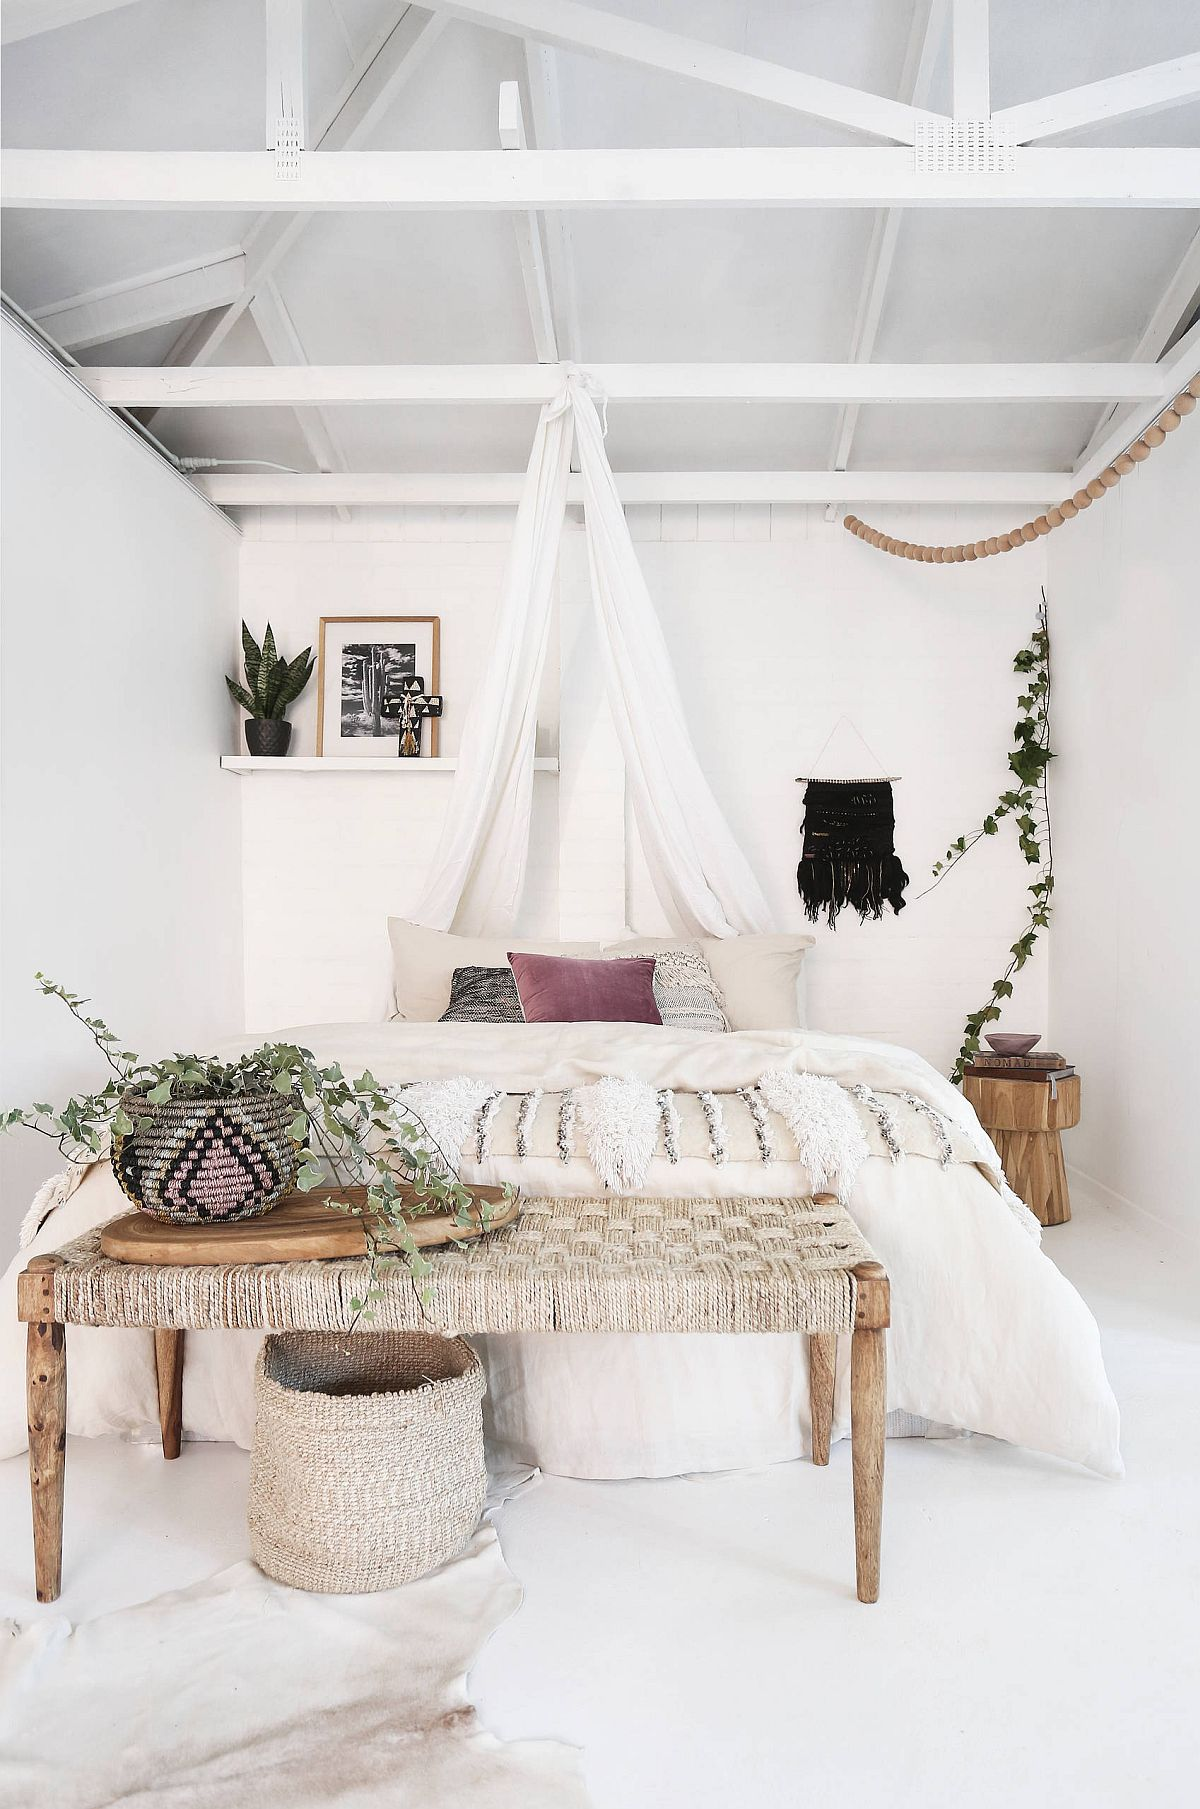 Bohemian beach style bedroom is easy on the eyes and senses